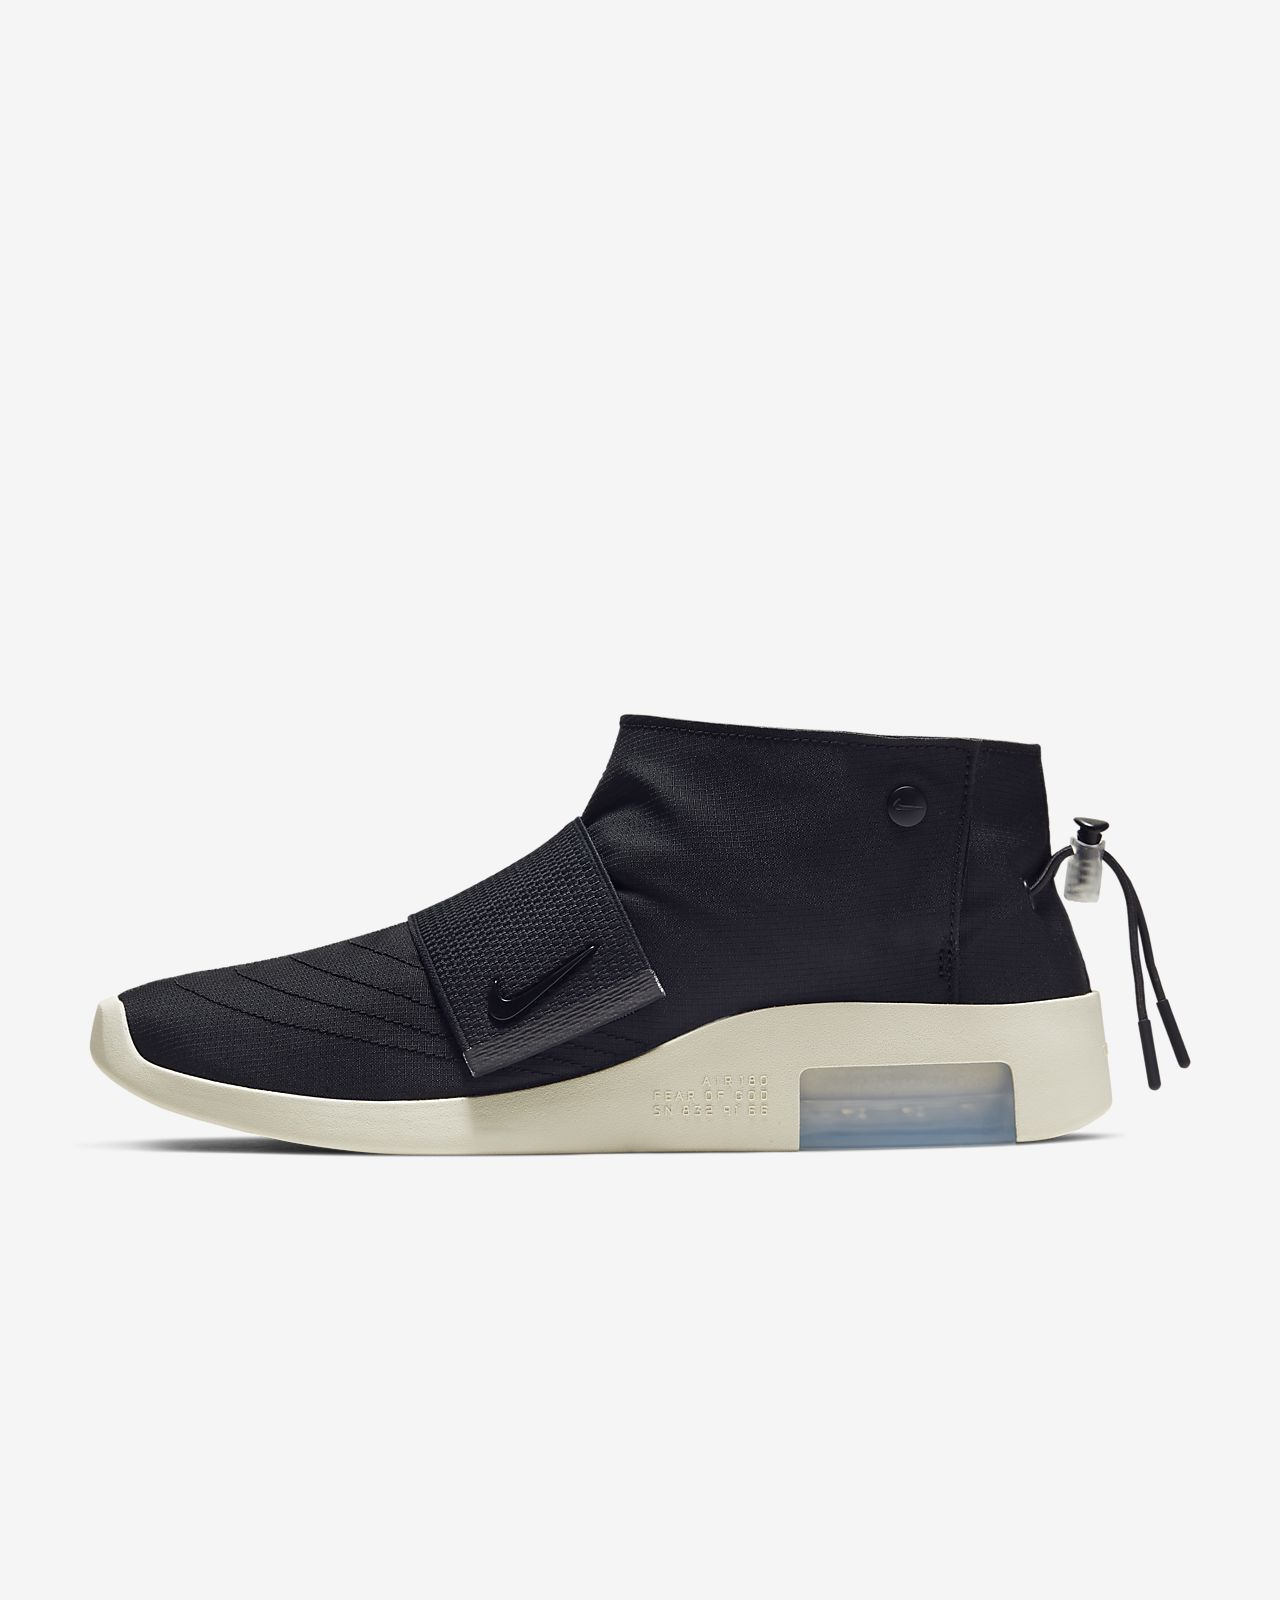 Nike Air x Fear of God Men\u0027s Moccasin